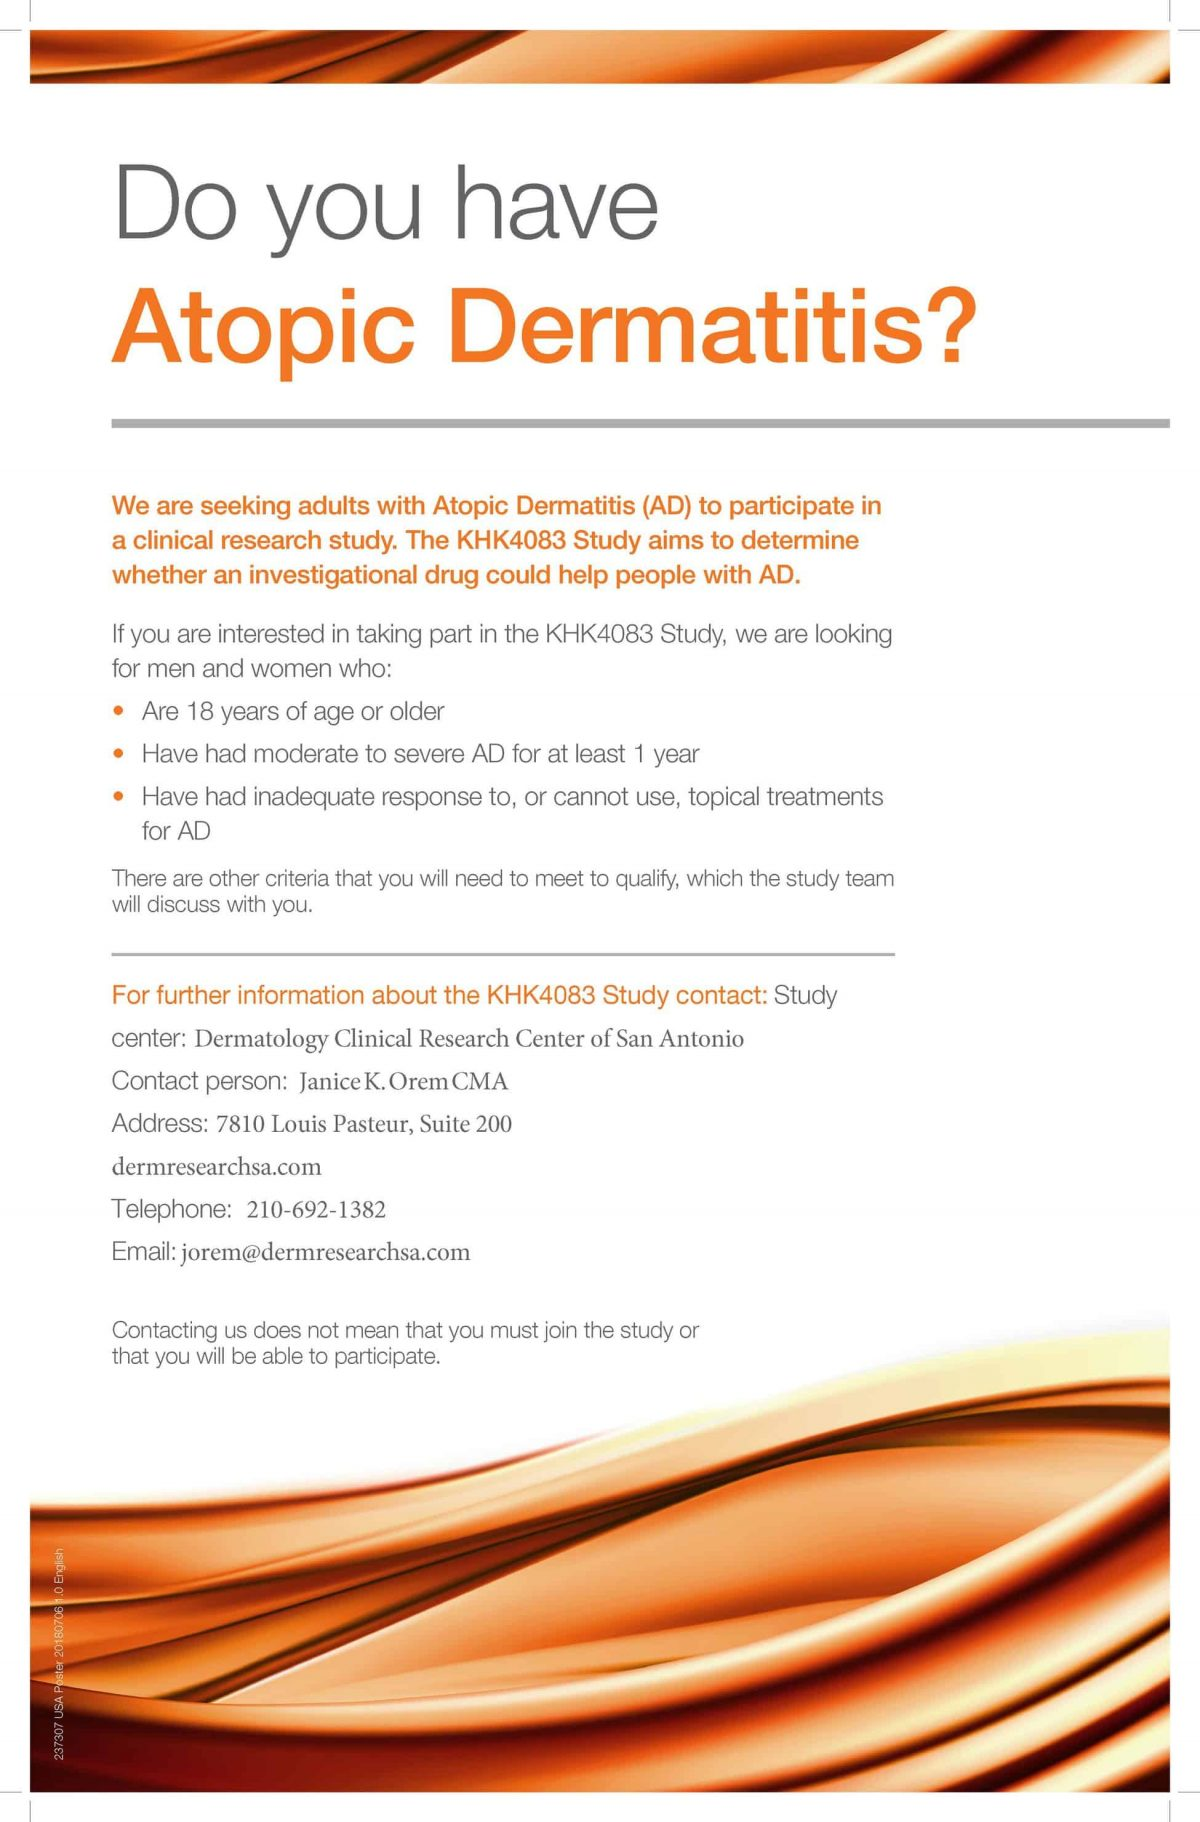 eczema clinical trial information flyer